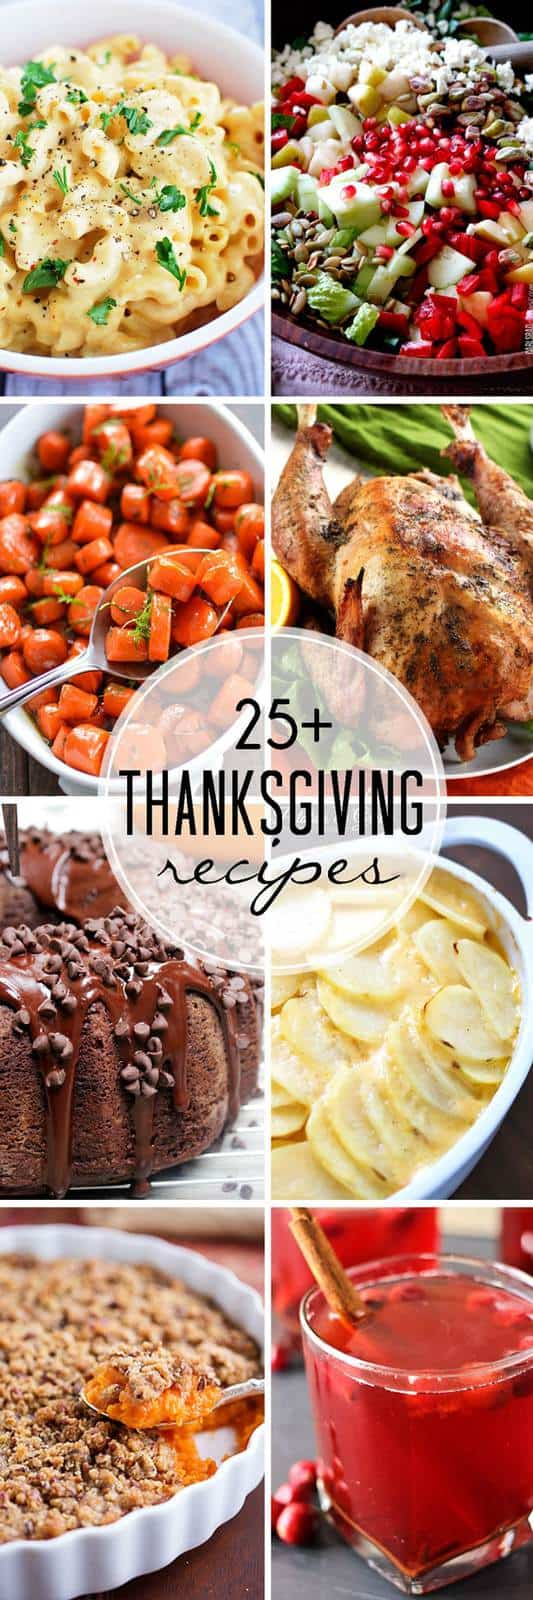 Over 25 of The Best Thanksgiving Recipes - from classic to creative, everything from veggies and sides to drinks and desserts, and of course the star of the show, the turkey, for your Thanksgiving dinner menu! | cupcakesandkalechips.com